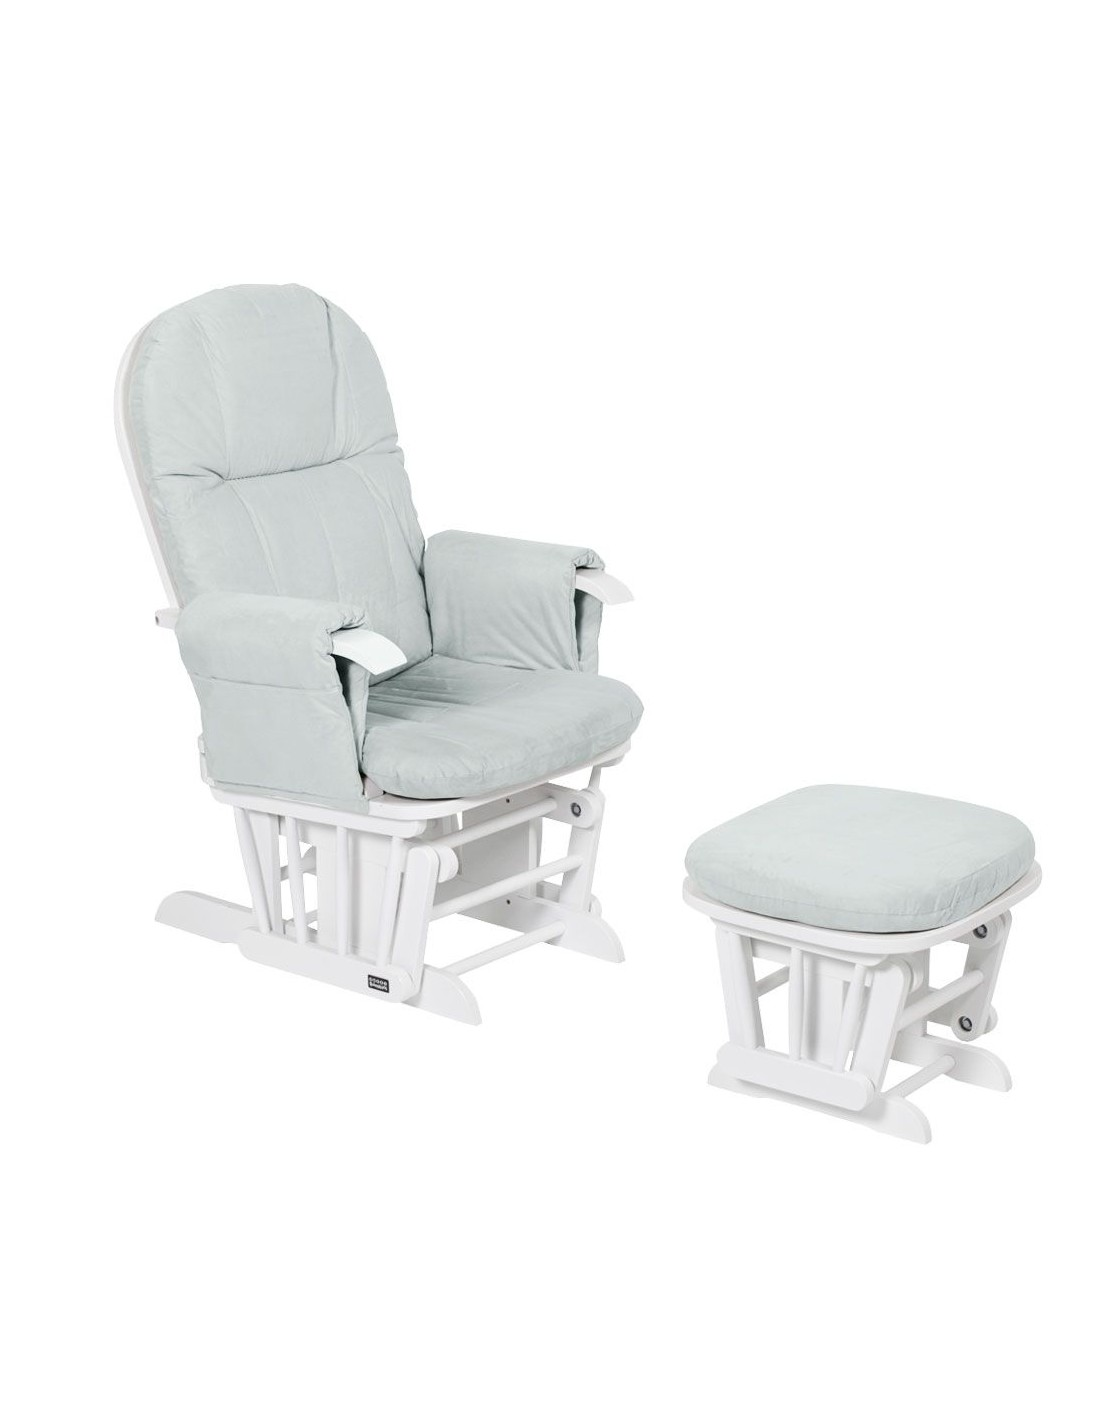 Tutti Bambini Reclining Glider Chair Footstool White With Grey Cushions